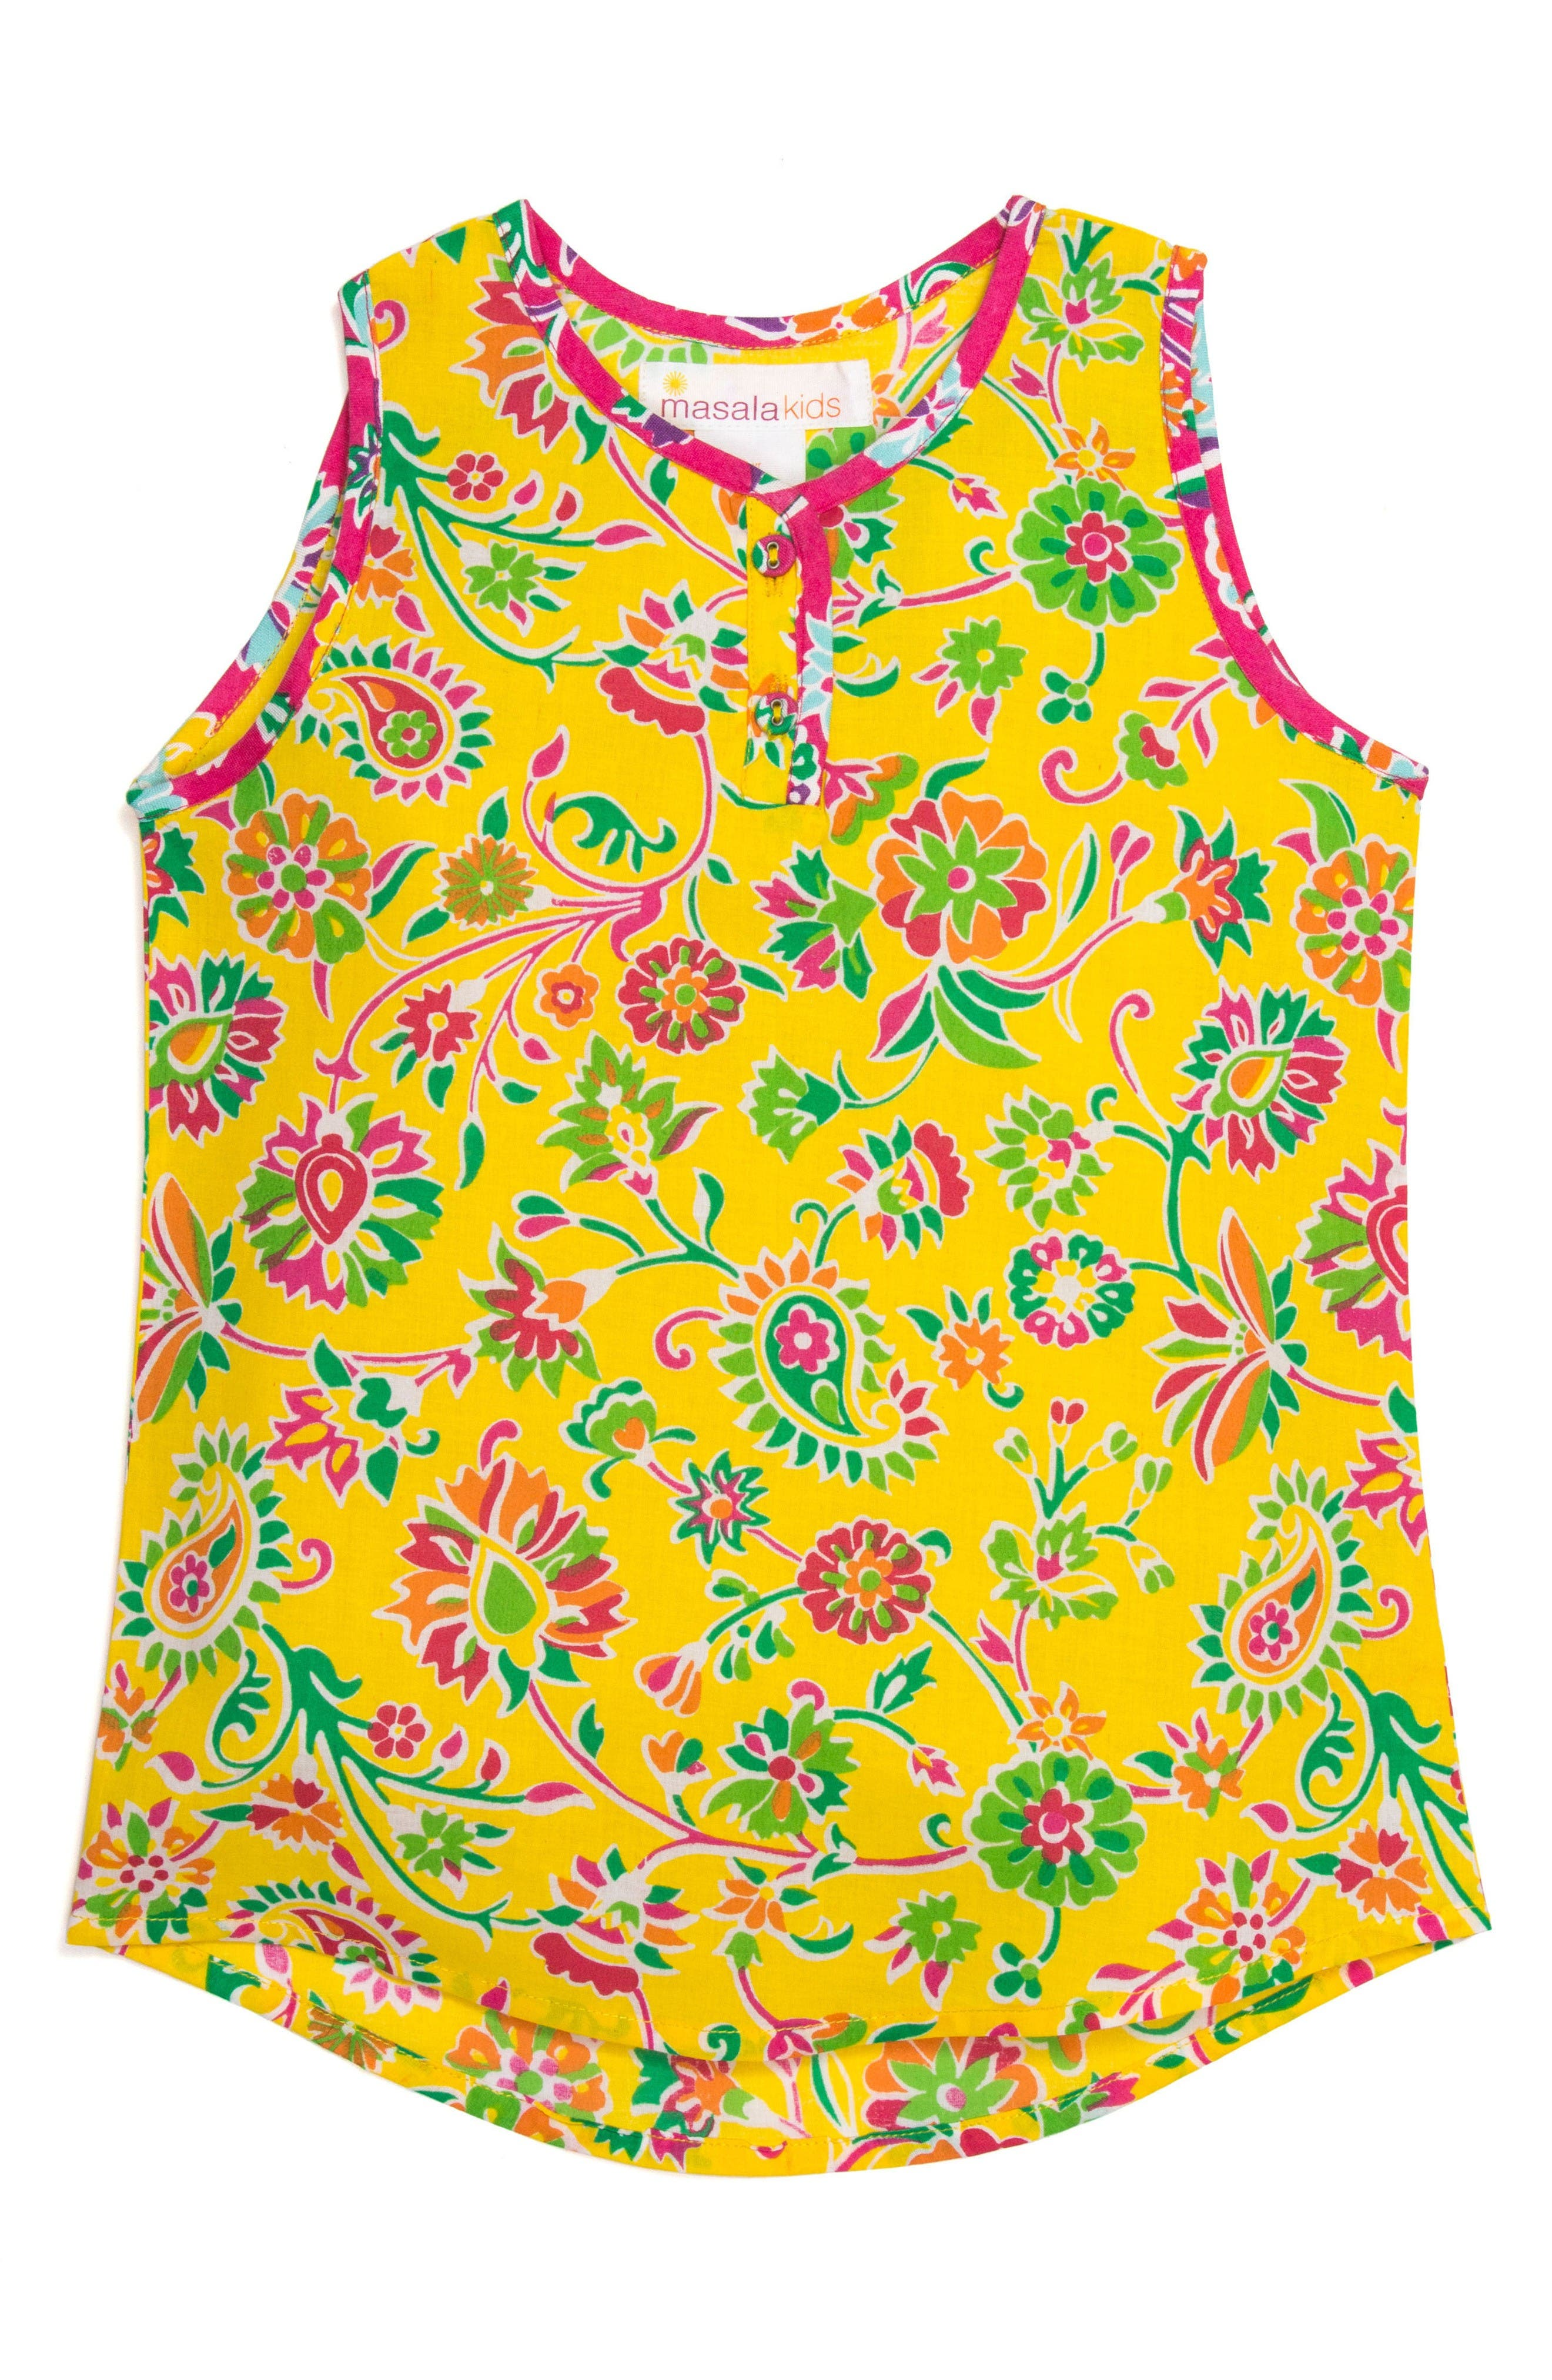 Masalababy Mimi Sleeveless Top (Toddler Girls, Little Girls & Big Girls)